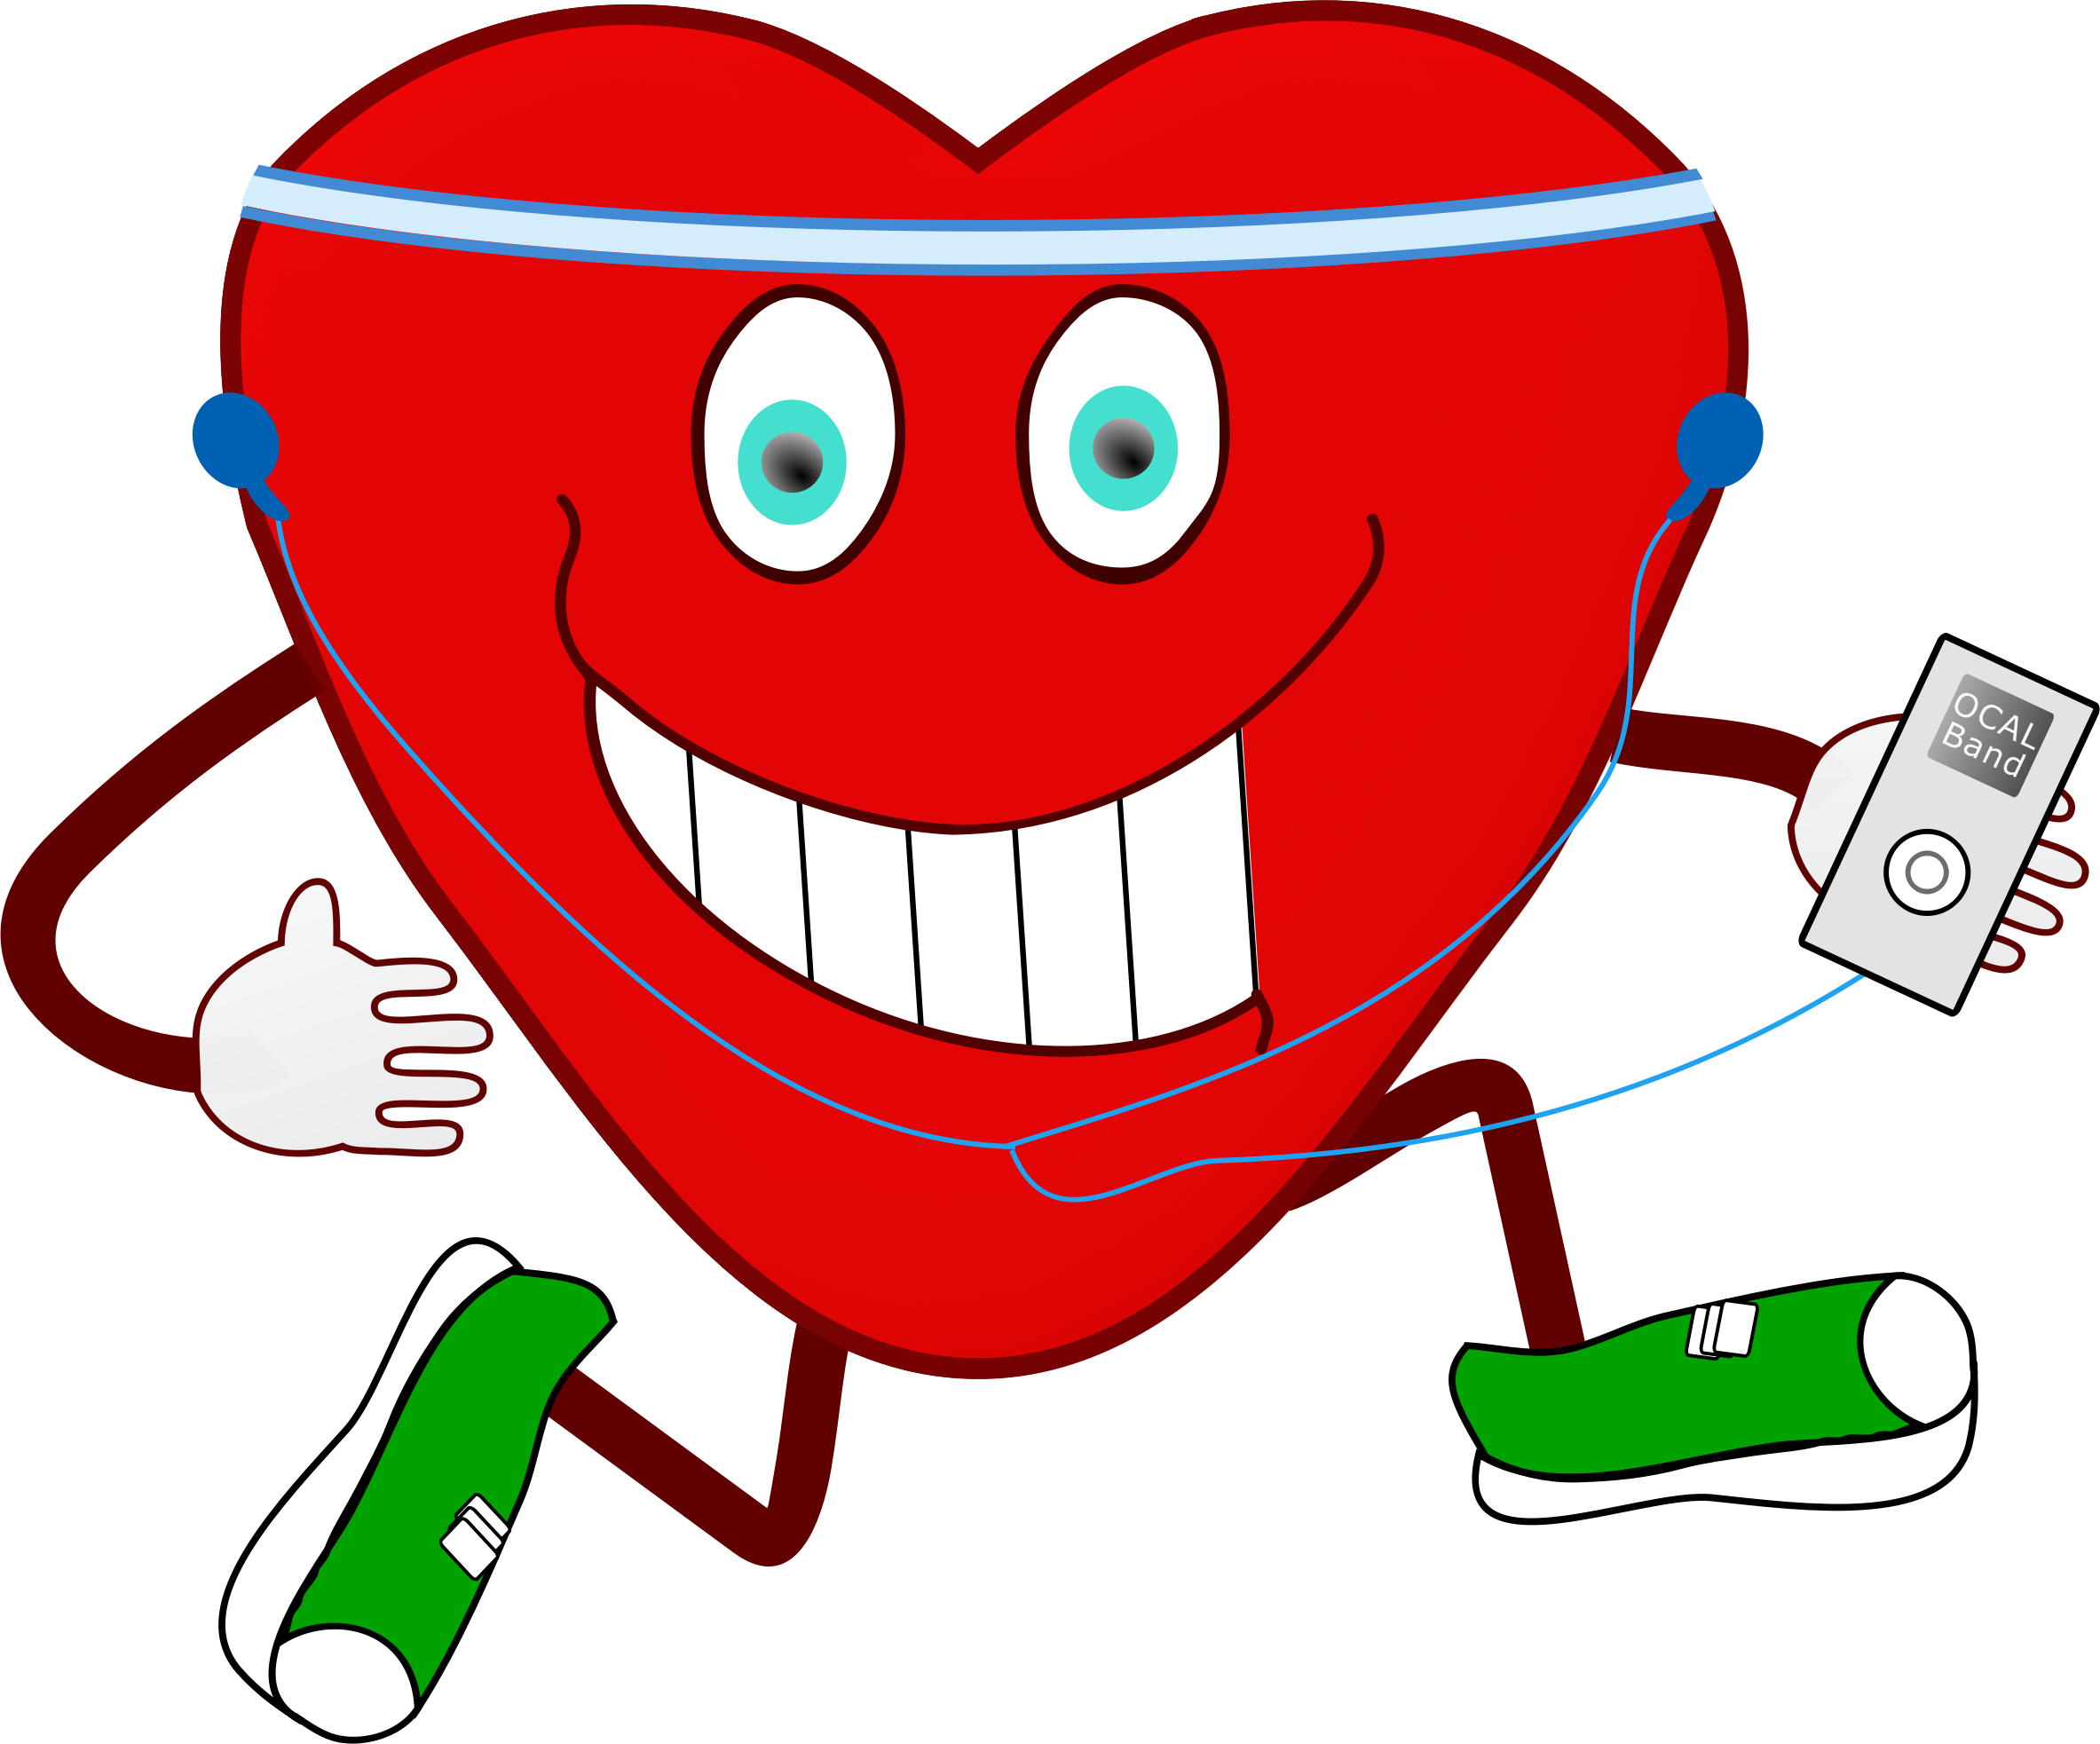 Exercise clipart heart. Jogging big image png